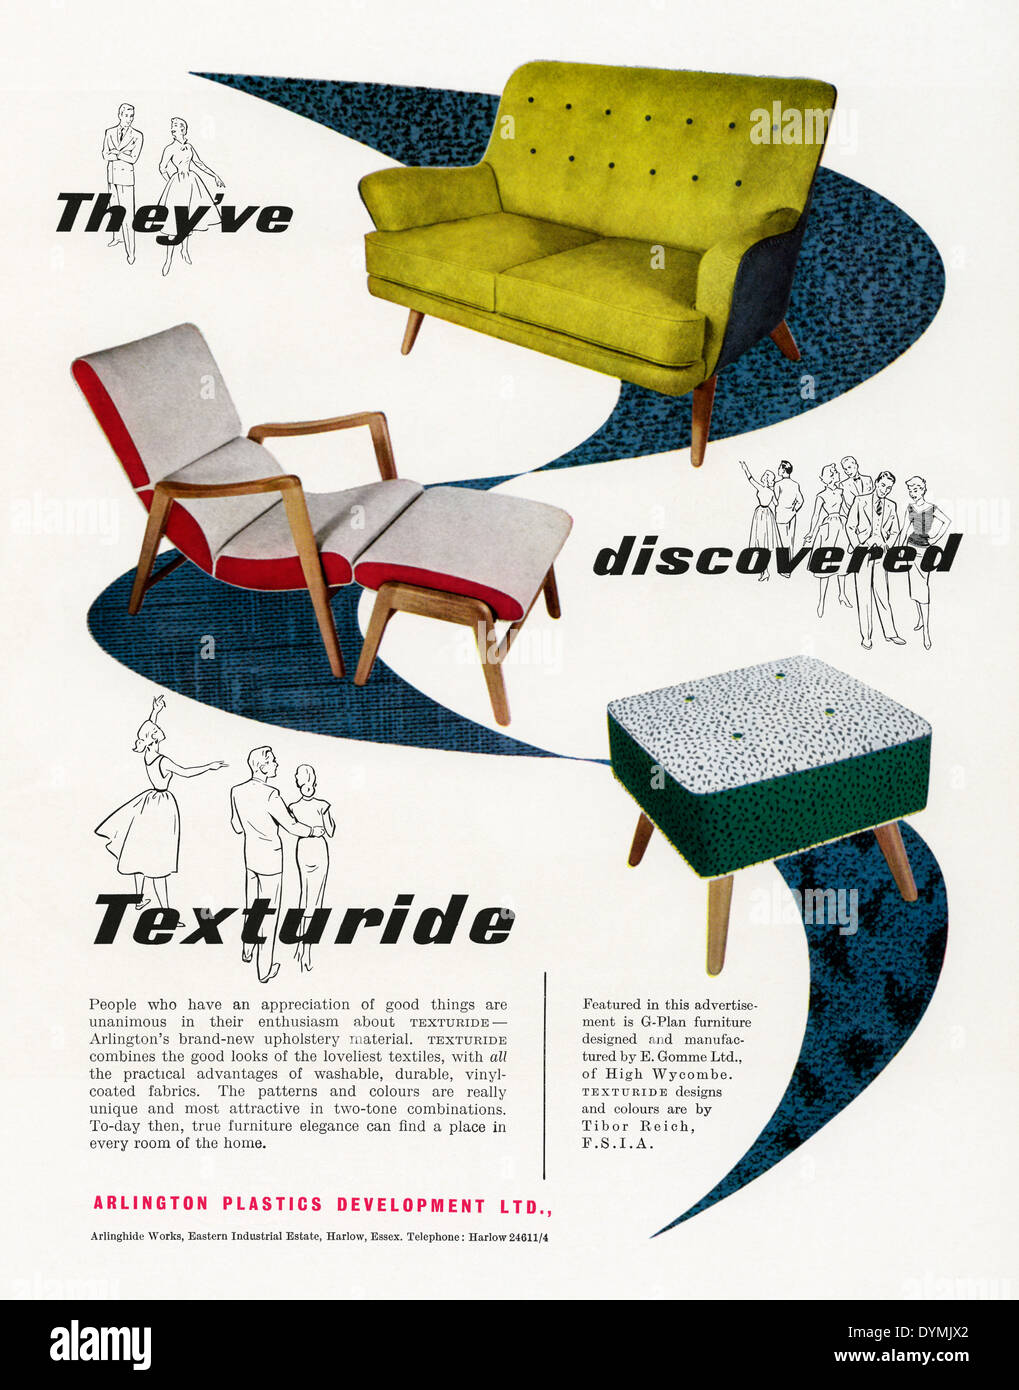 Old advert for G-Plan, Texturide-covered, faux leather chairs, sofas and footstools. The advert appeared in a magazine Stock Photo